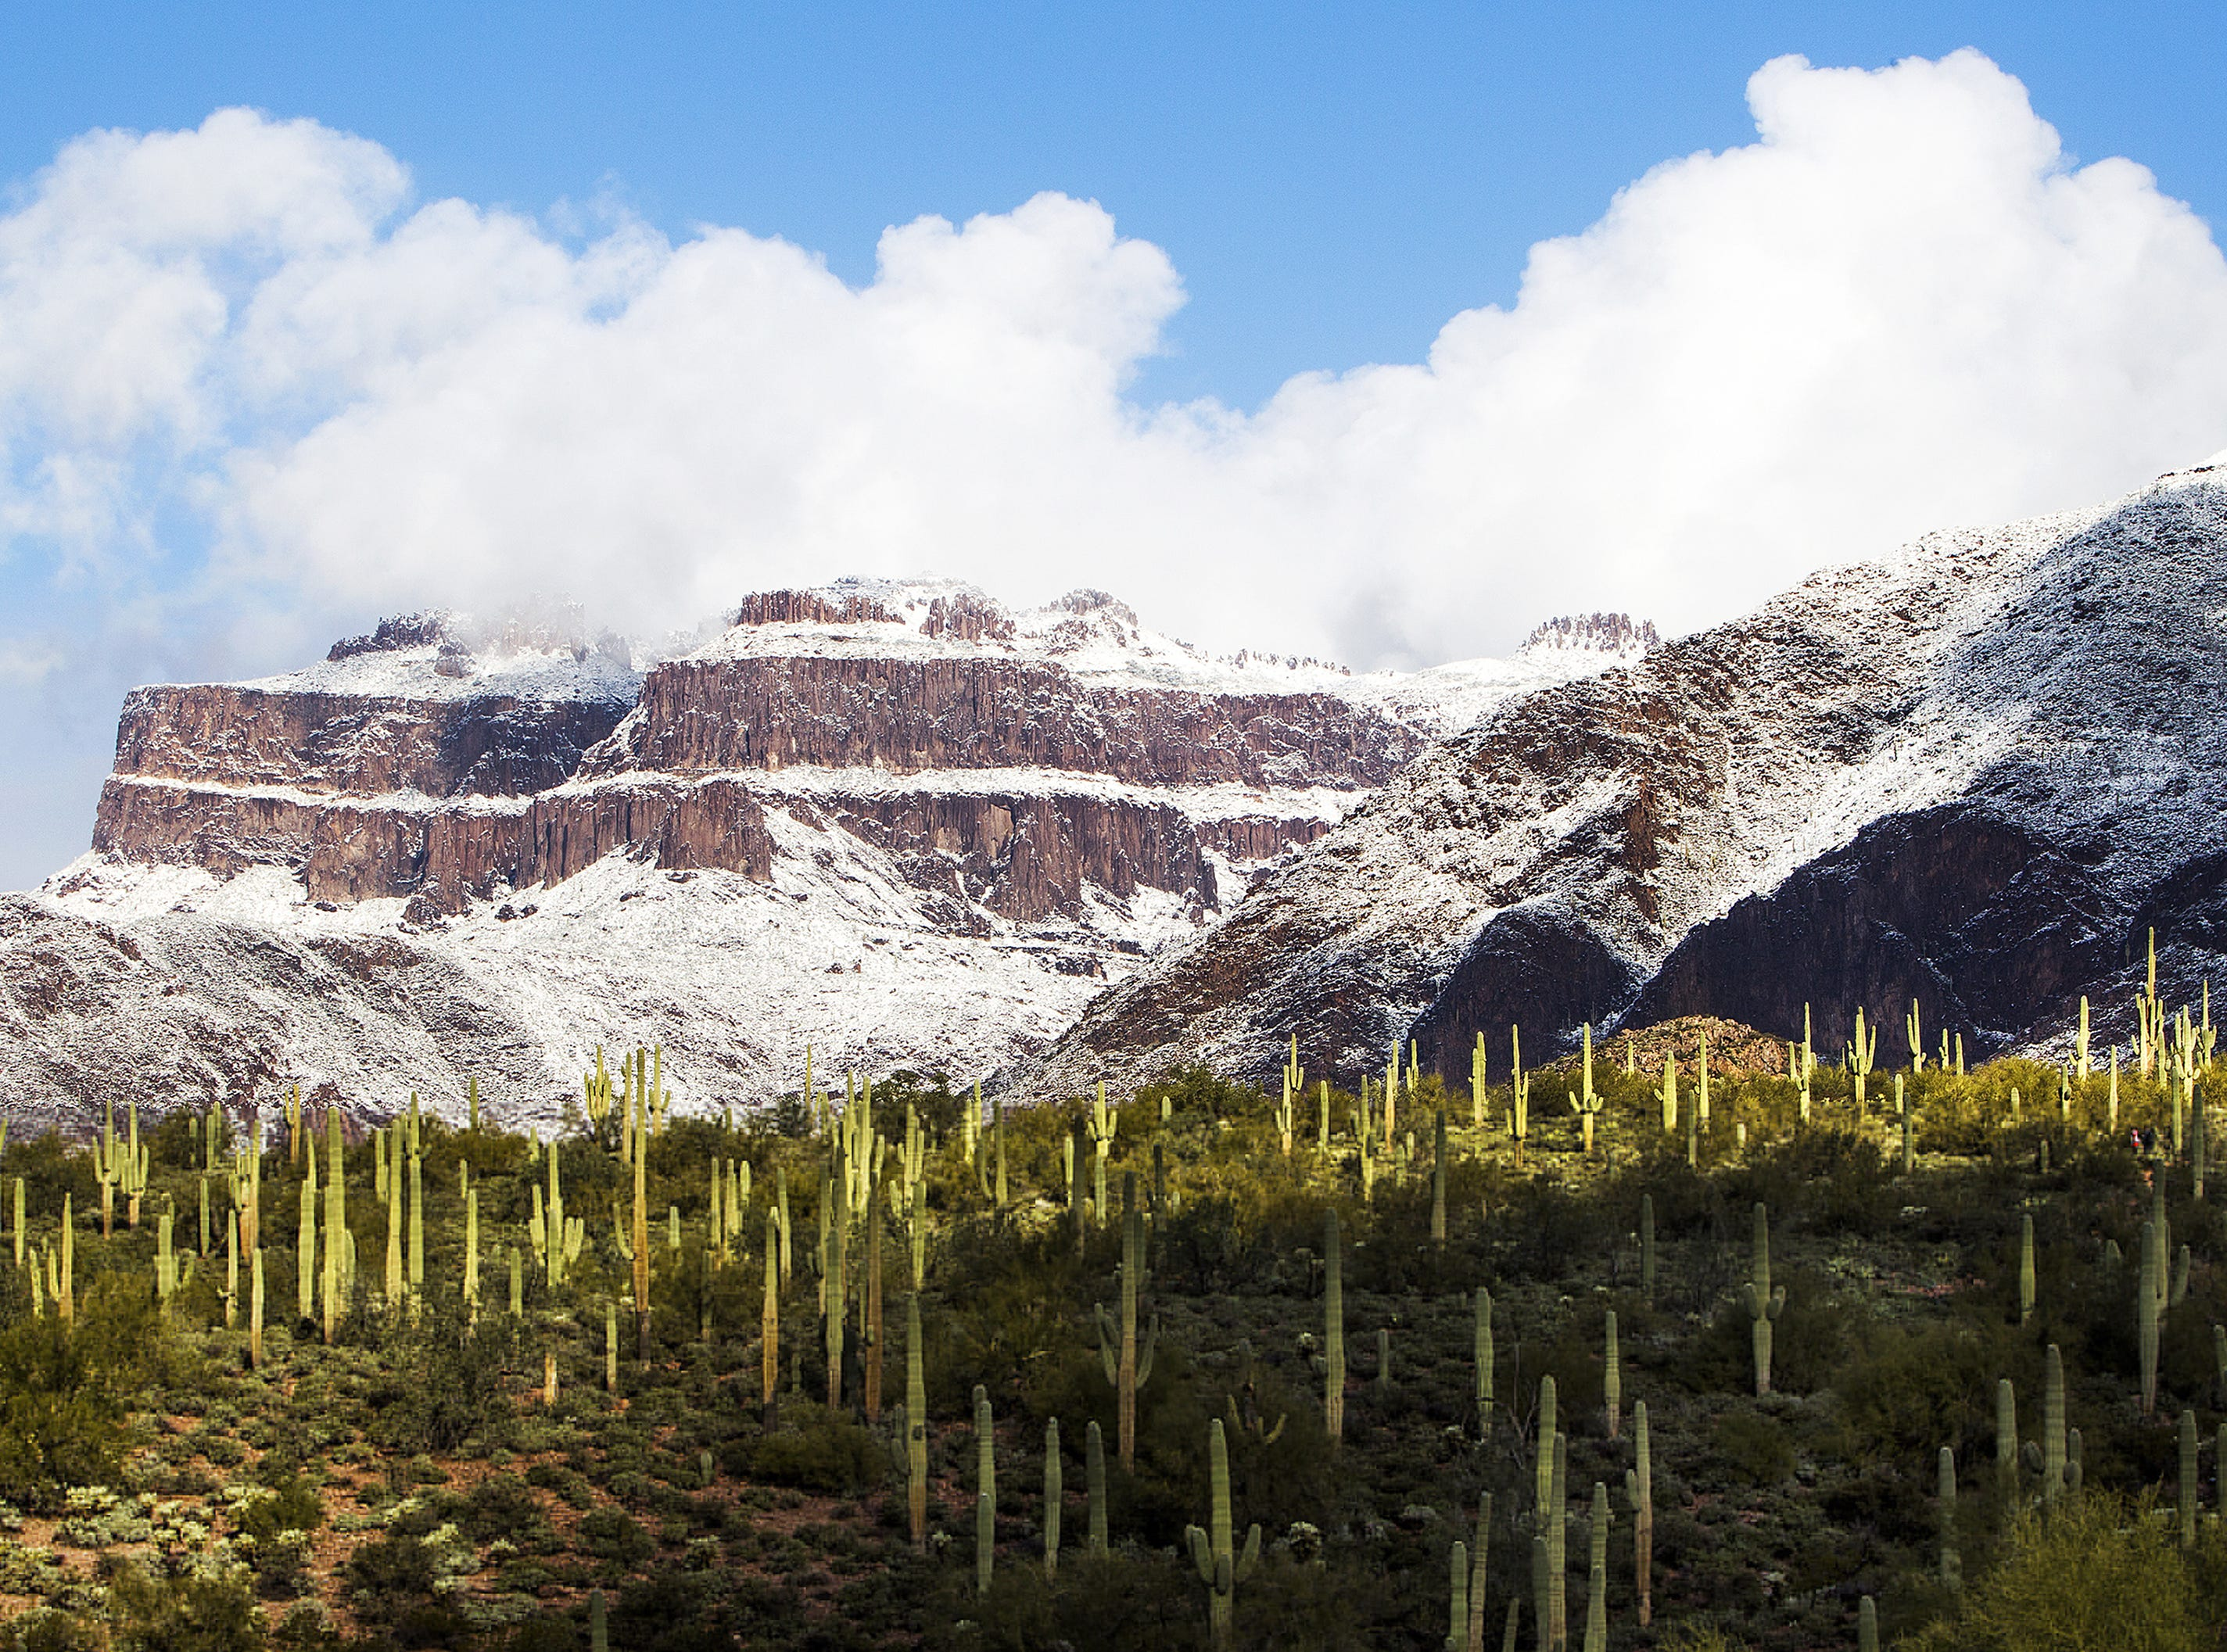 A light dusting of snow covers parts of the Superstition Mountains as seen from the Lost Goldmine Trail in Gold Canyon on New Year's morning, January 1, 2015.